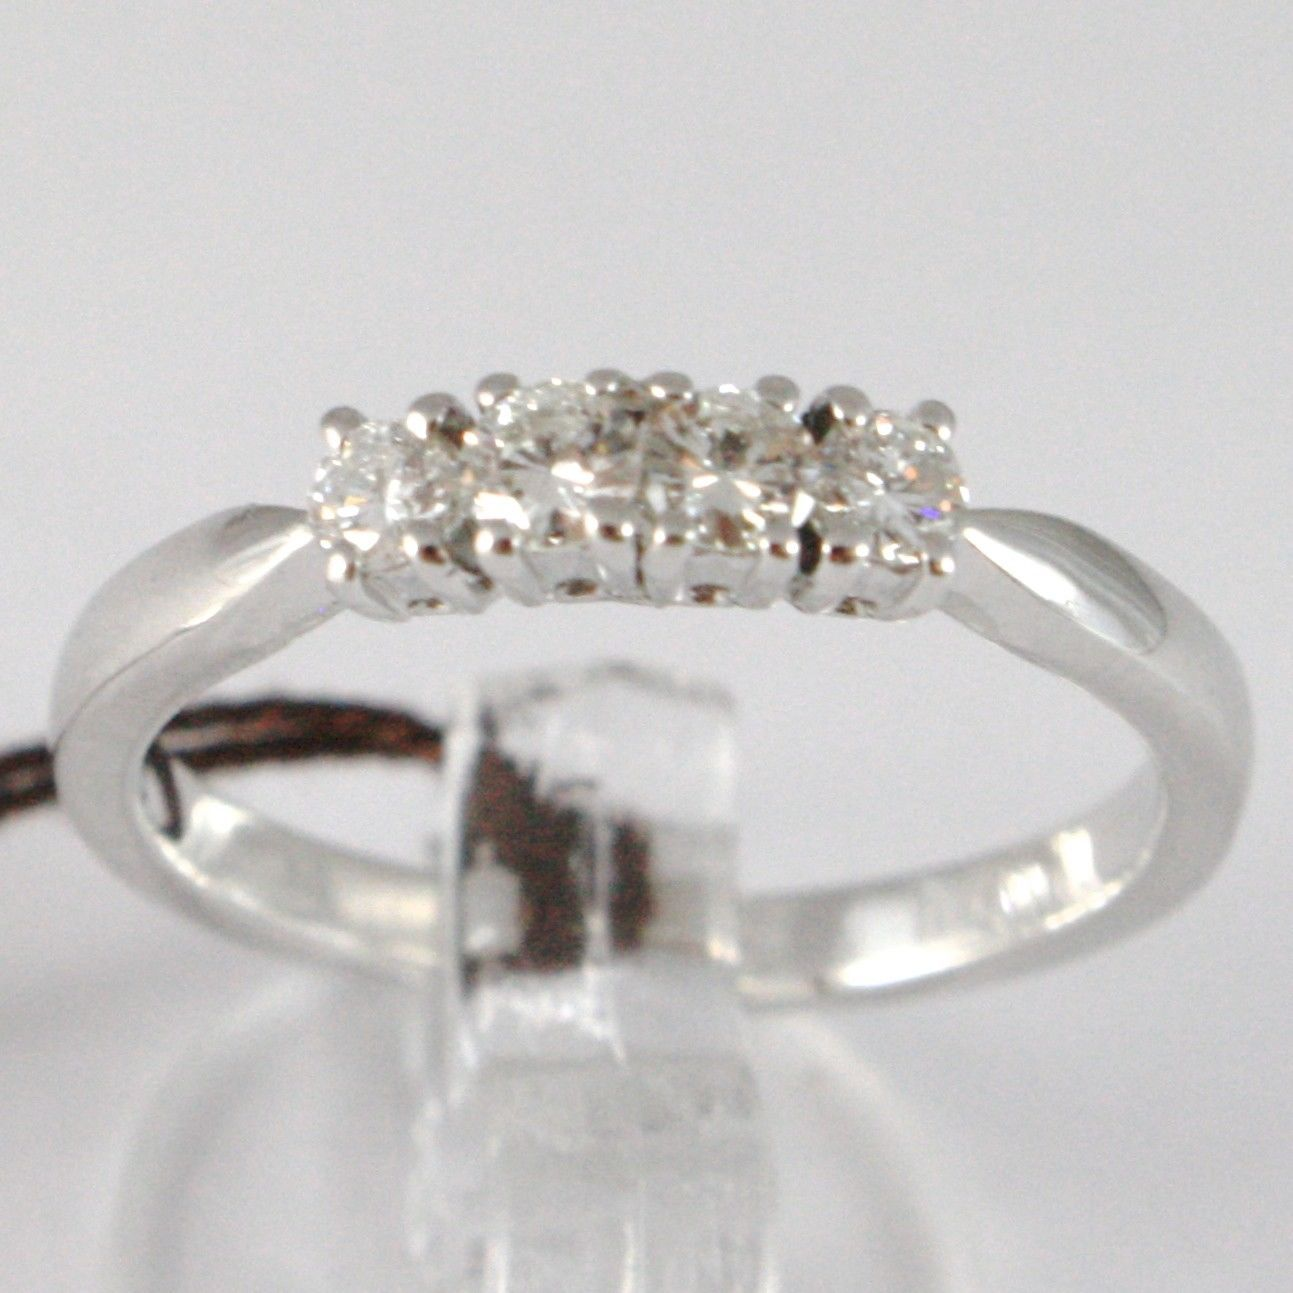 BAGUE EN OR BLANC 750 18K, VERETTA 4 DIAMANTS CARAT EN TOUT 0.29, TIGE CARRÉ